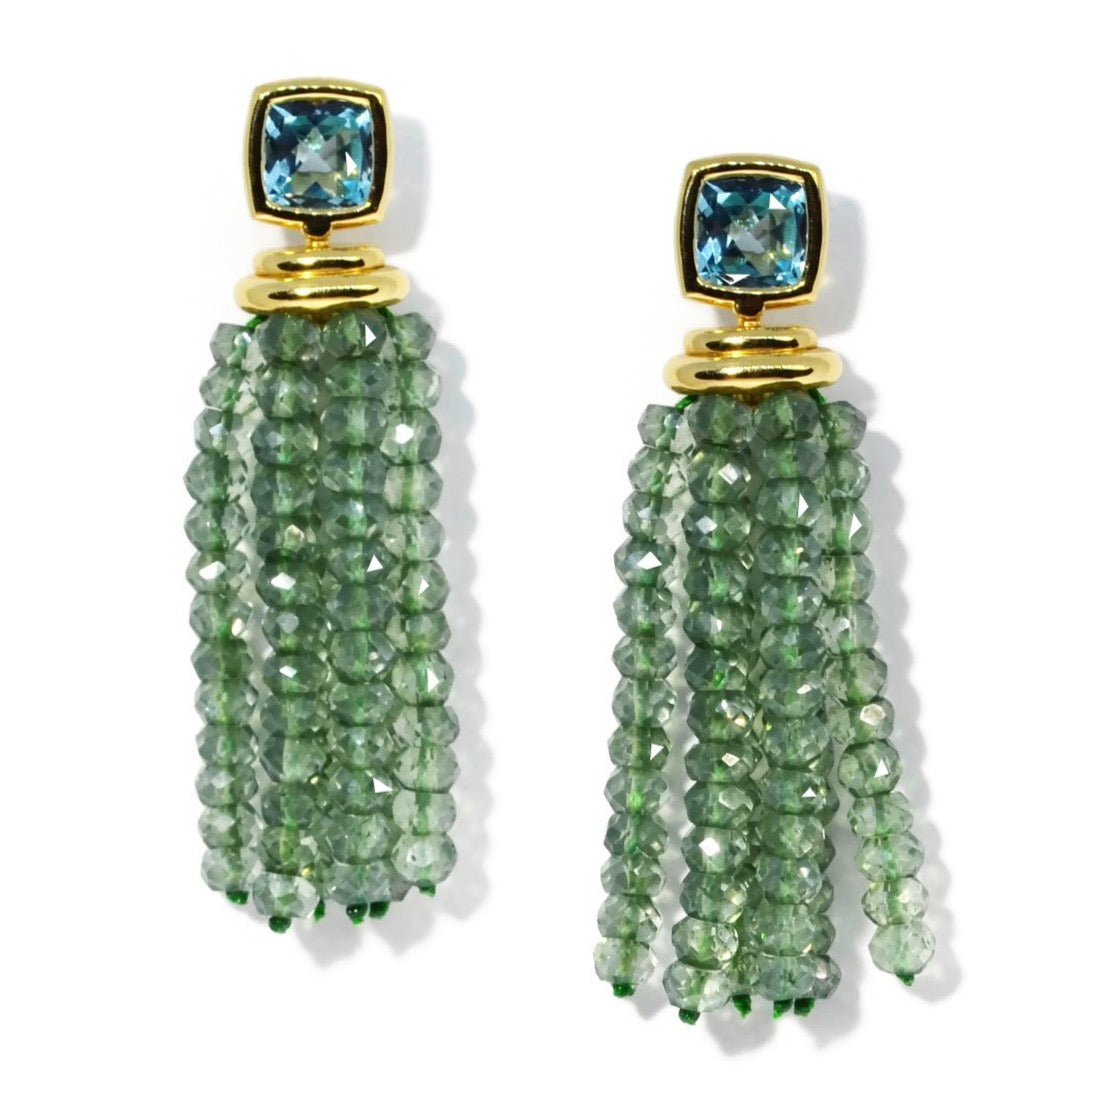 A-FURST-GAIA-TASSEL-EARRINGS-SKY-BLUE-TOPAZ-PRASIOLITE-YELLOW-GOLD-O1780GUP